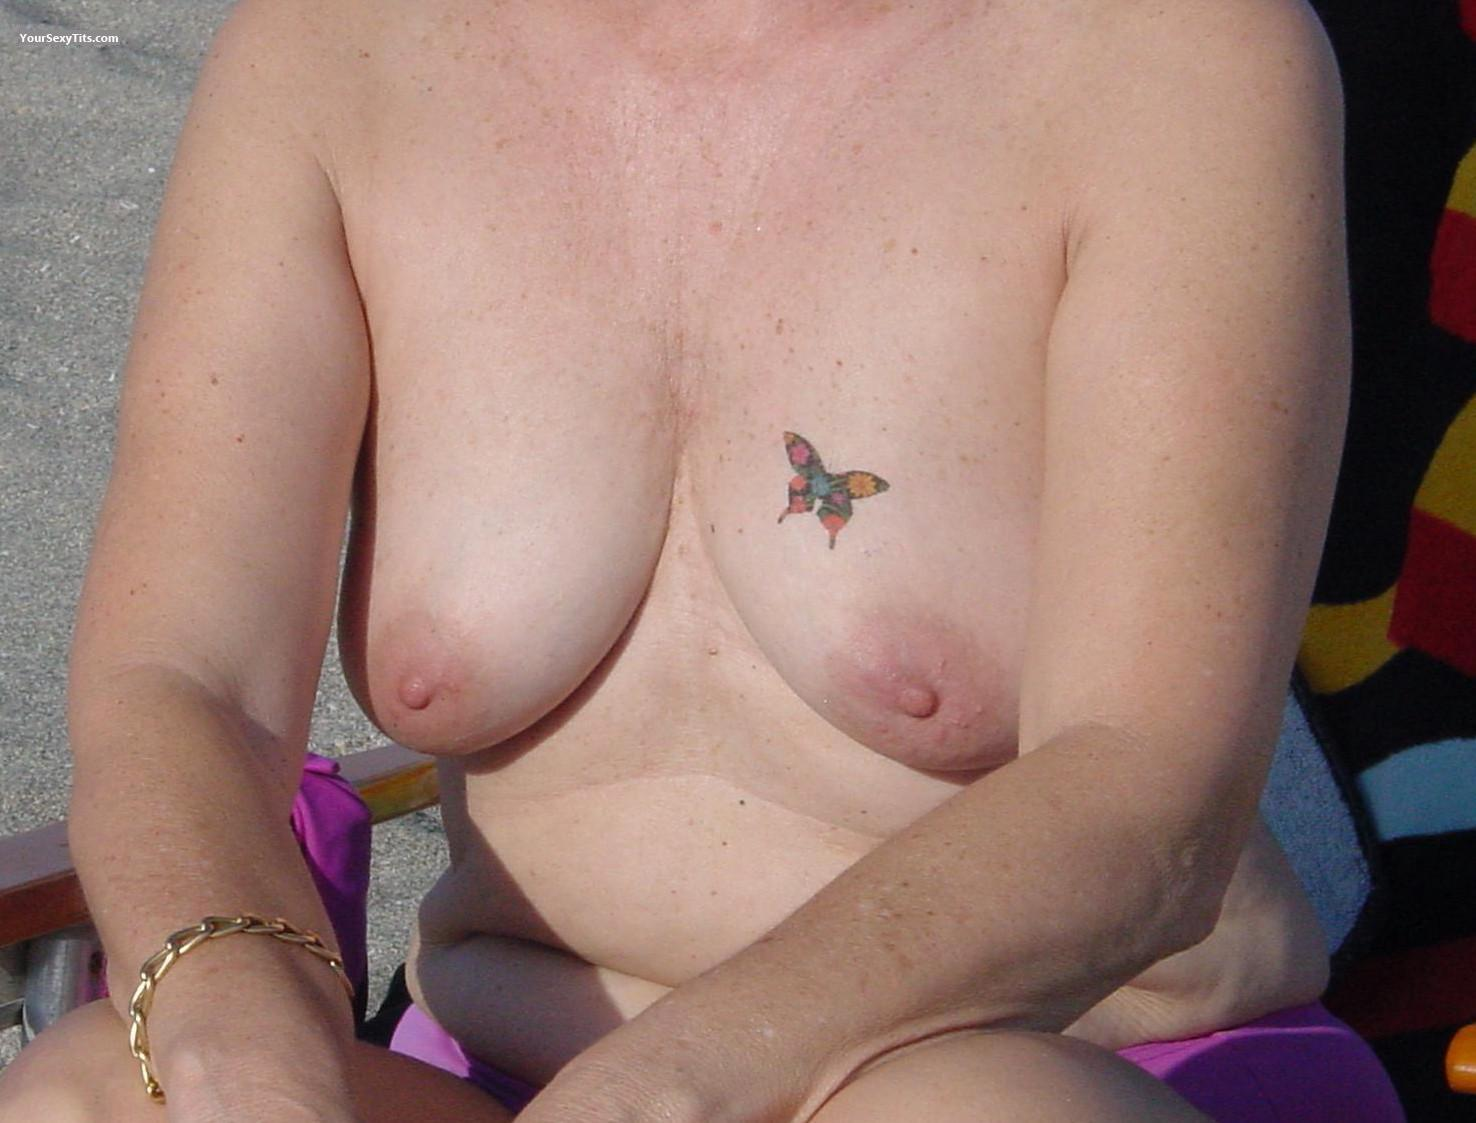 Tit Flash: Small Tits - Gina from United States